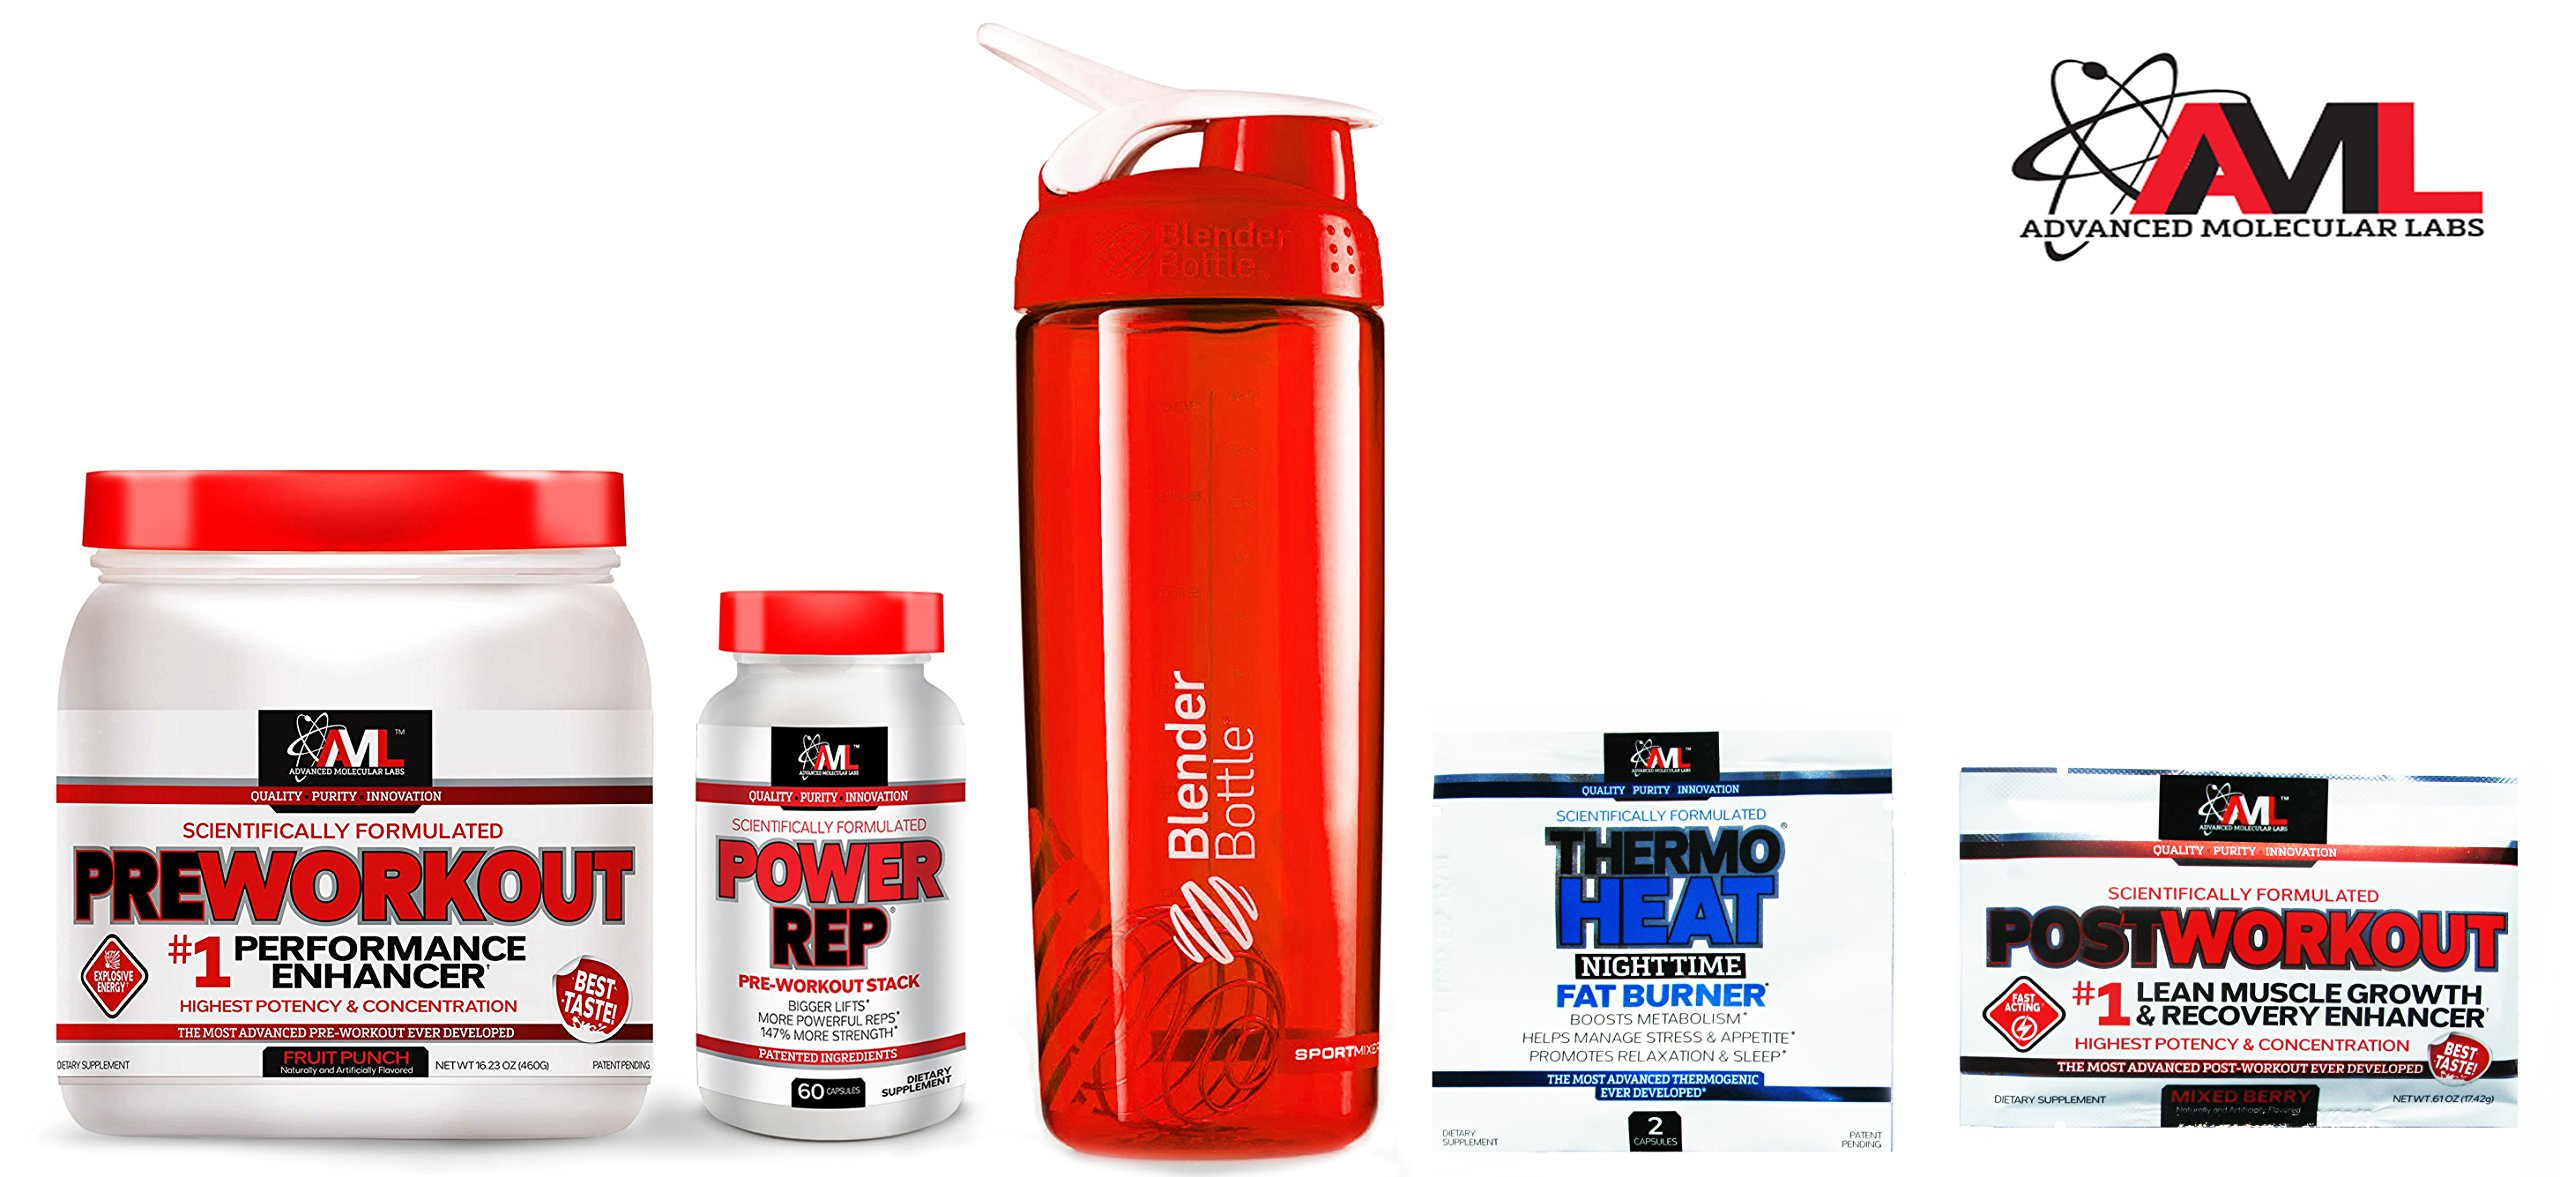 Advanced Molecular Labs Preworkout Stack, Fruit Punch Powder 18.34oz 520 Grams & Power Rep 60 Caps , with 8g Citrulline Malate, 5g Creatine - WITH FREE BLENDER BOTTLE & 2 TRAVEL SAMPLES by Advanced Molecular Labs (Image #3)